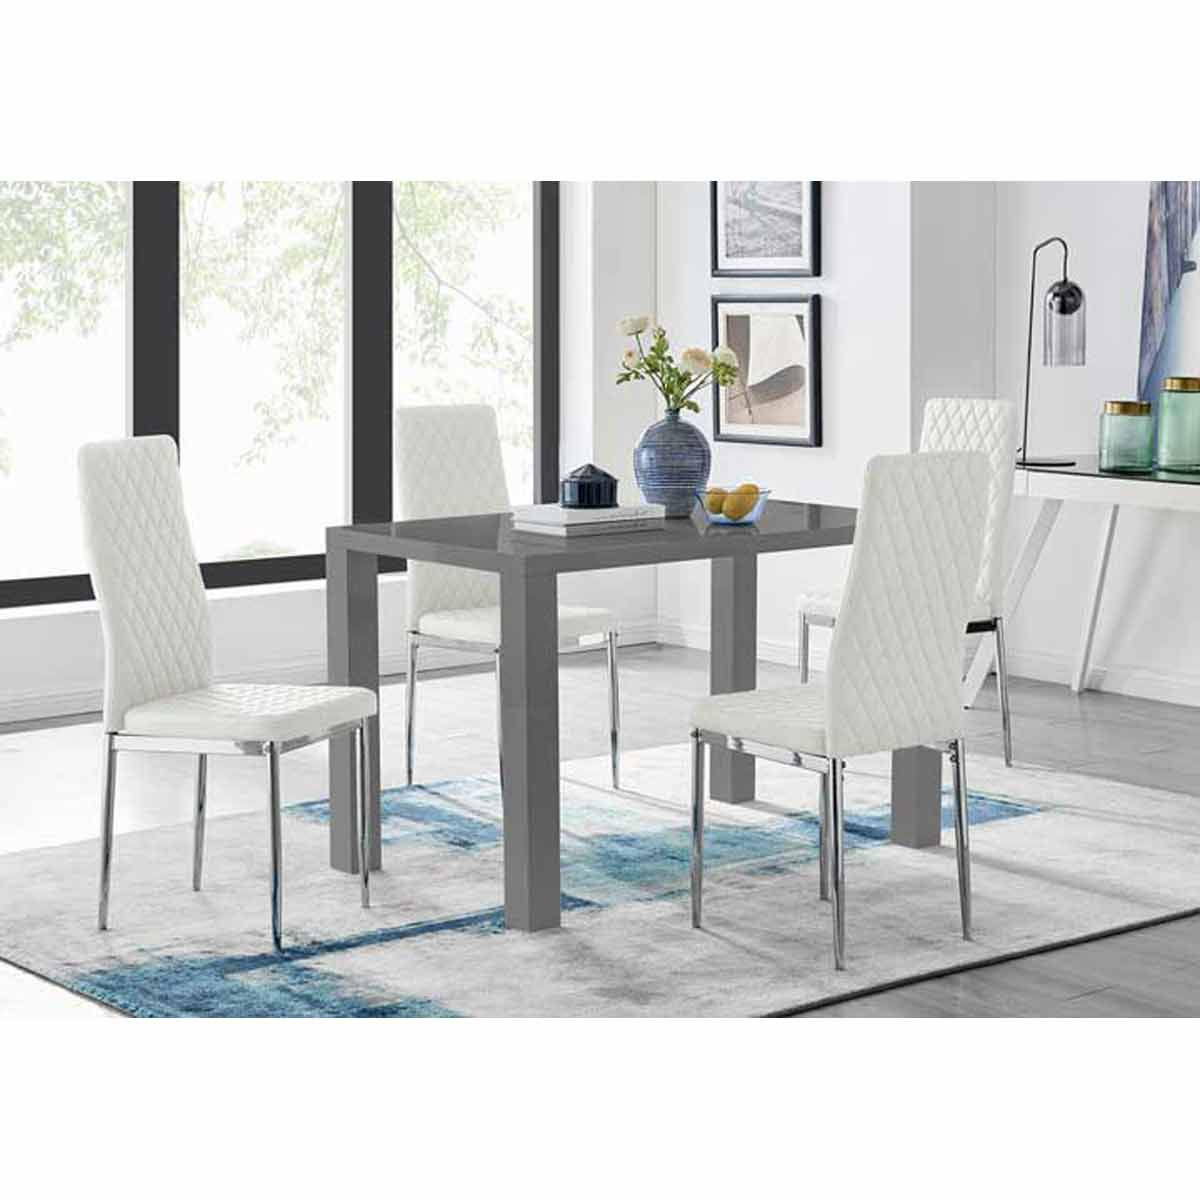 Furniture Box Pivero 4 Grey High Gloss Dining Table And 4 Modern White Milan Chairs Set